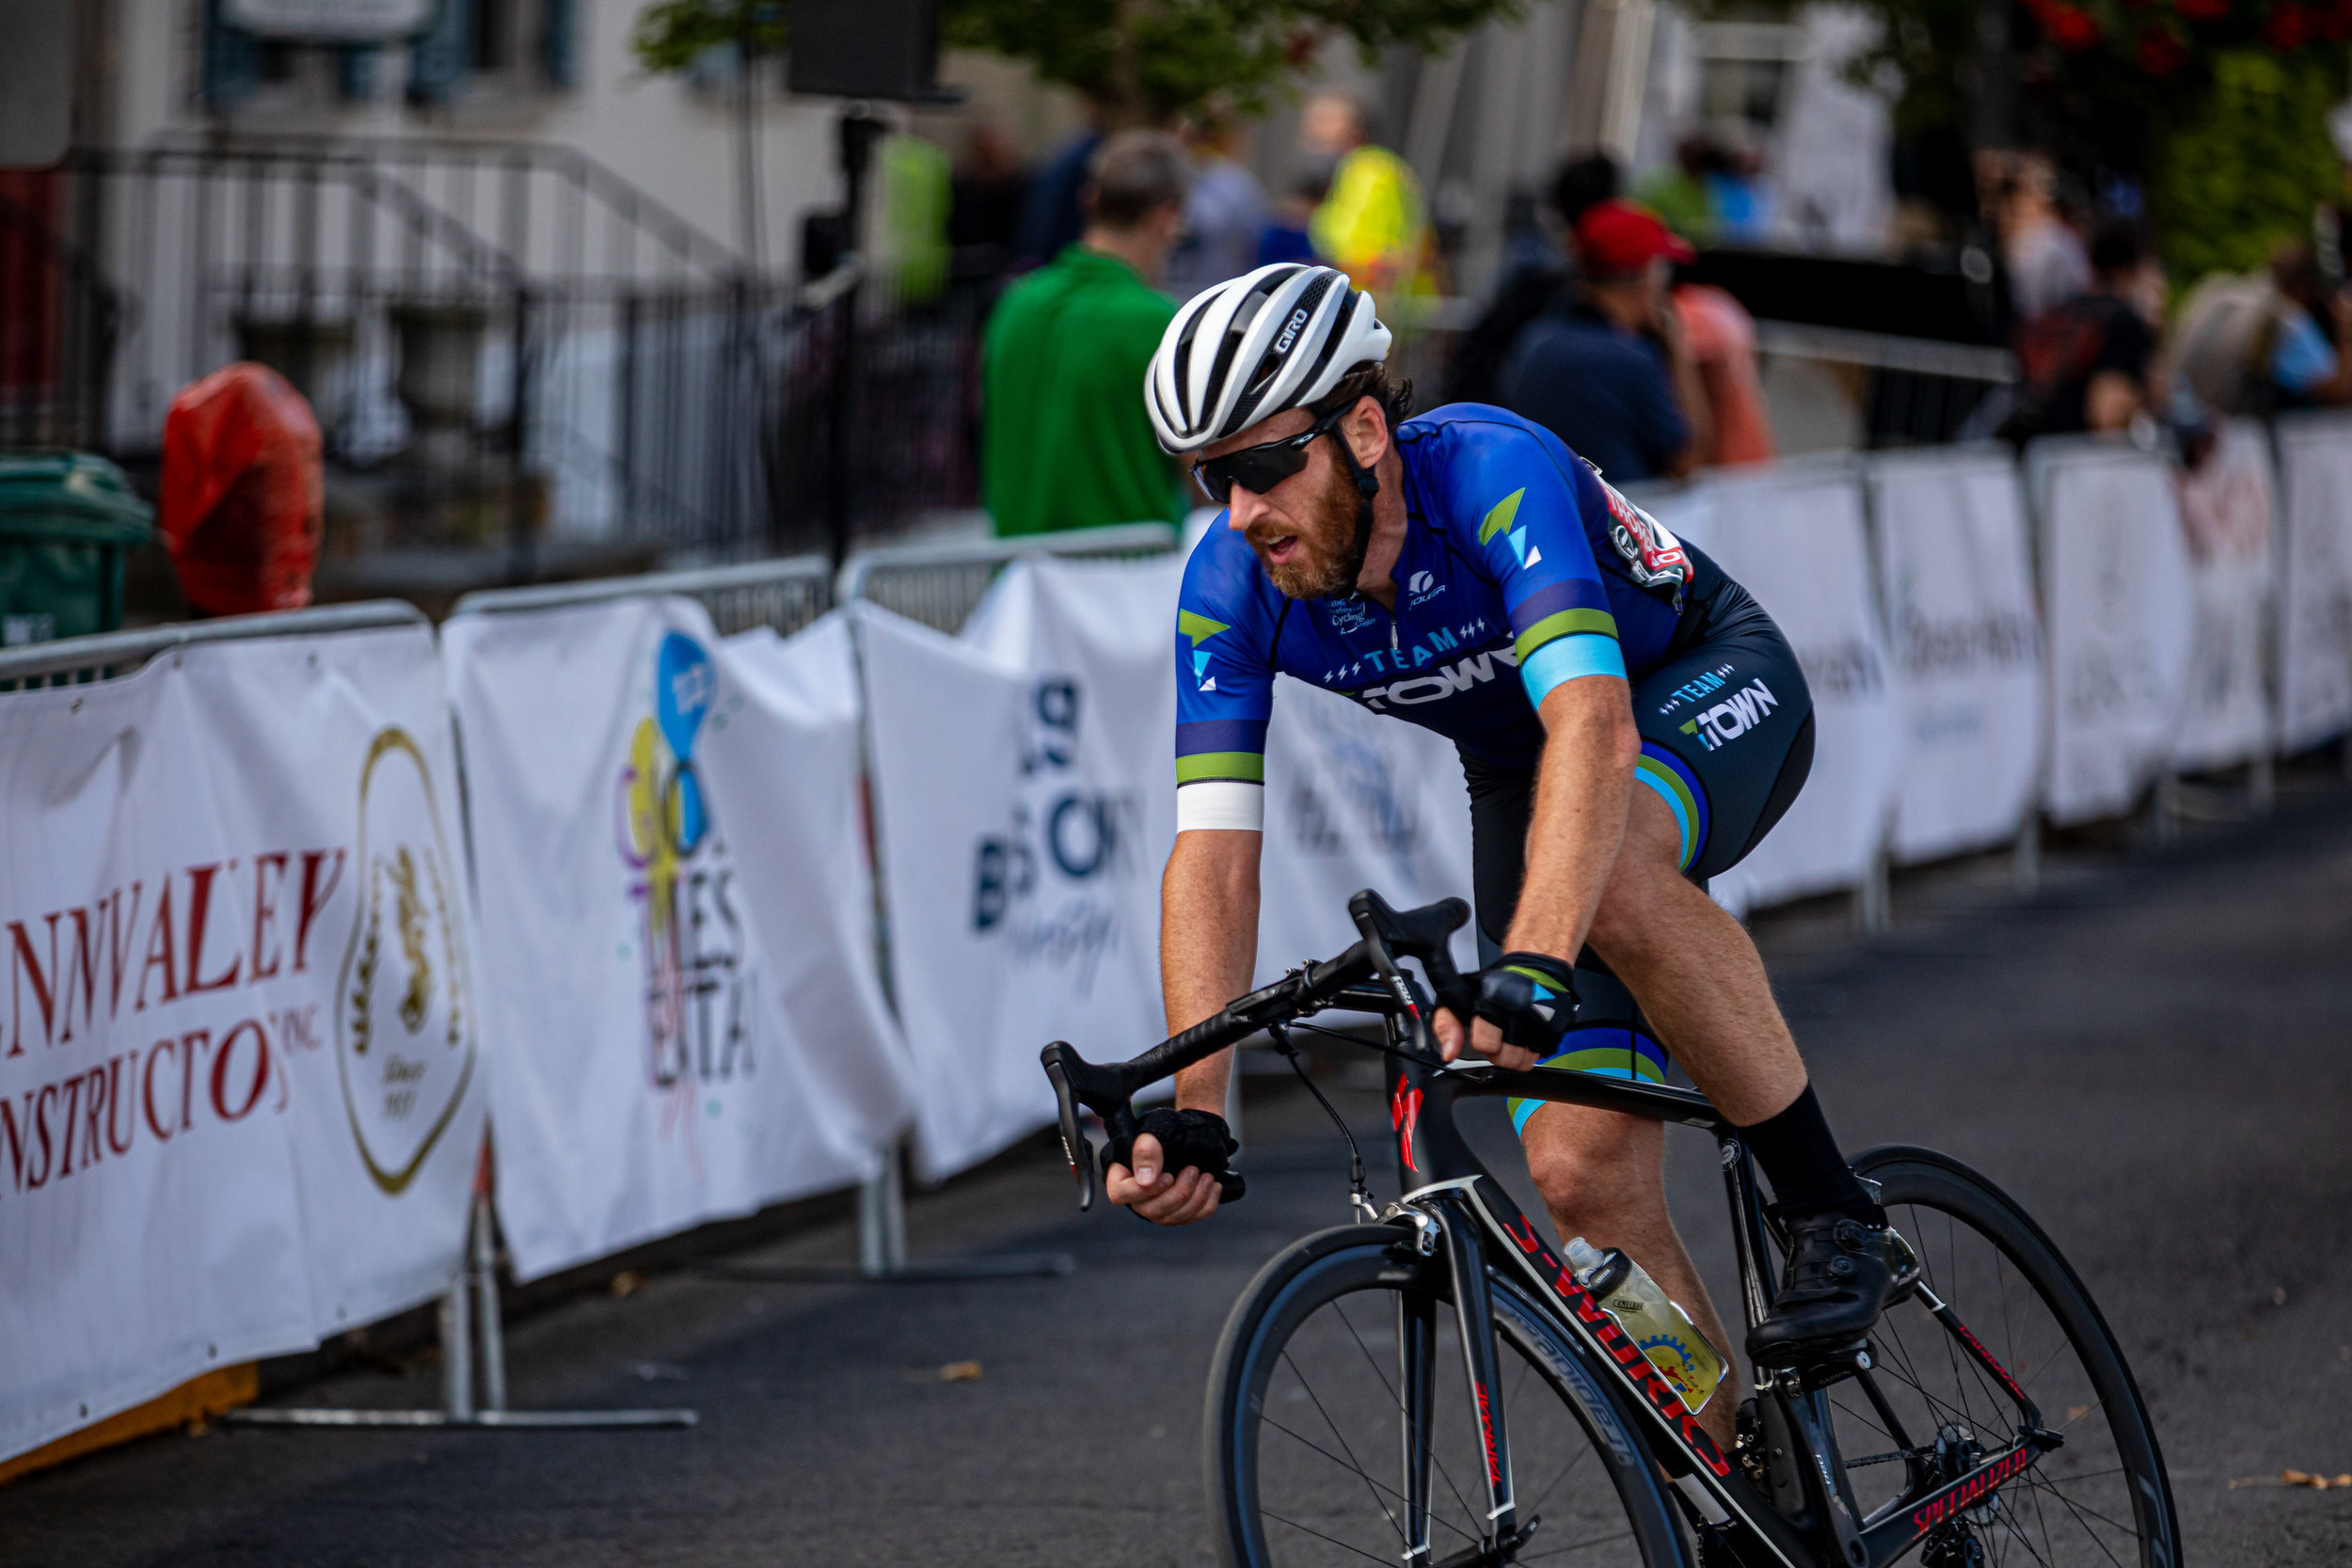 Brian Hitchon of Team T'Town goes into the first turn of the men's Cat 4/5 race. Photo courtesy   Mike Maney  .